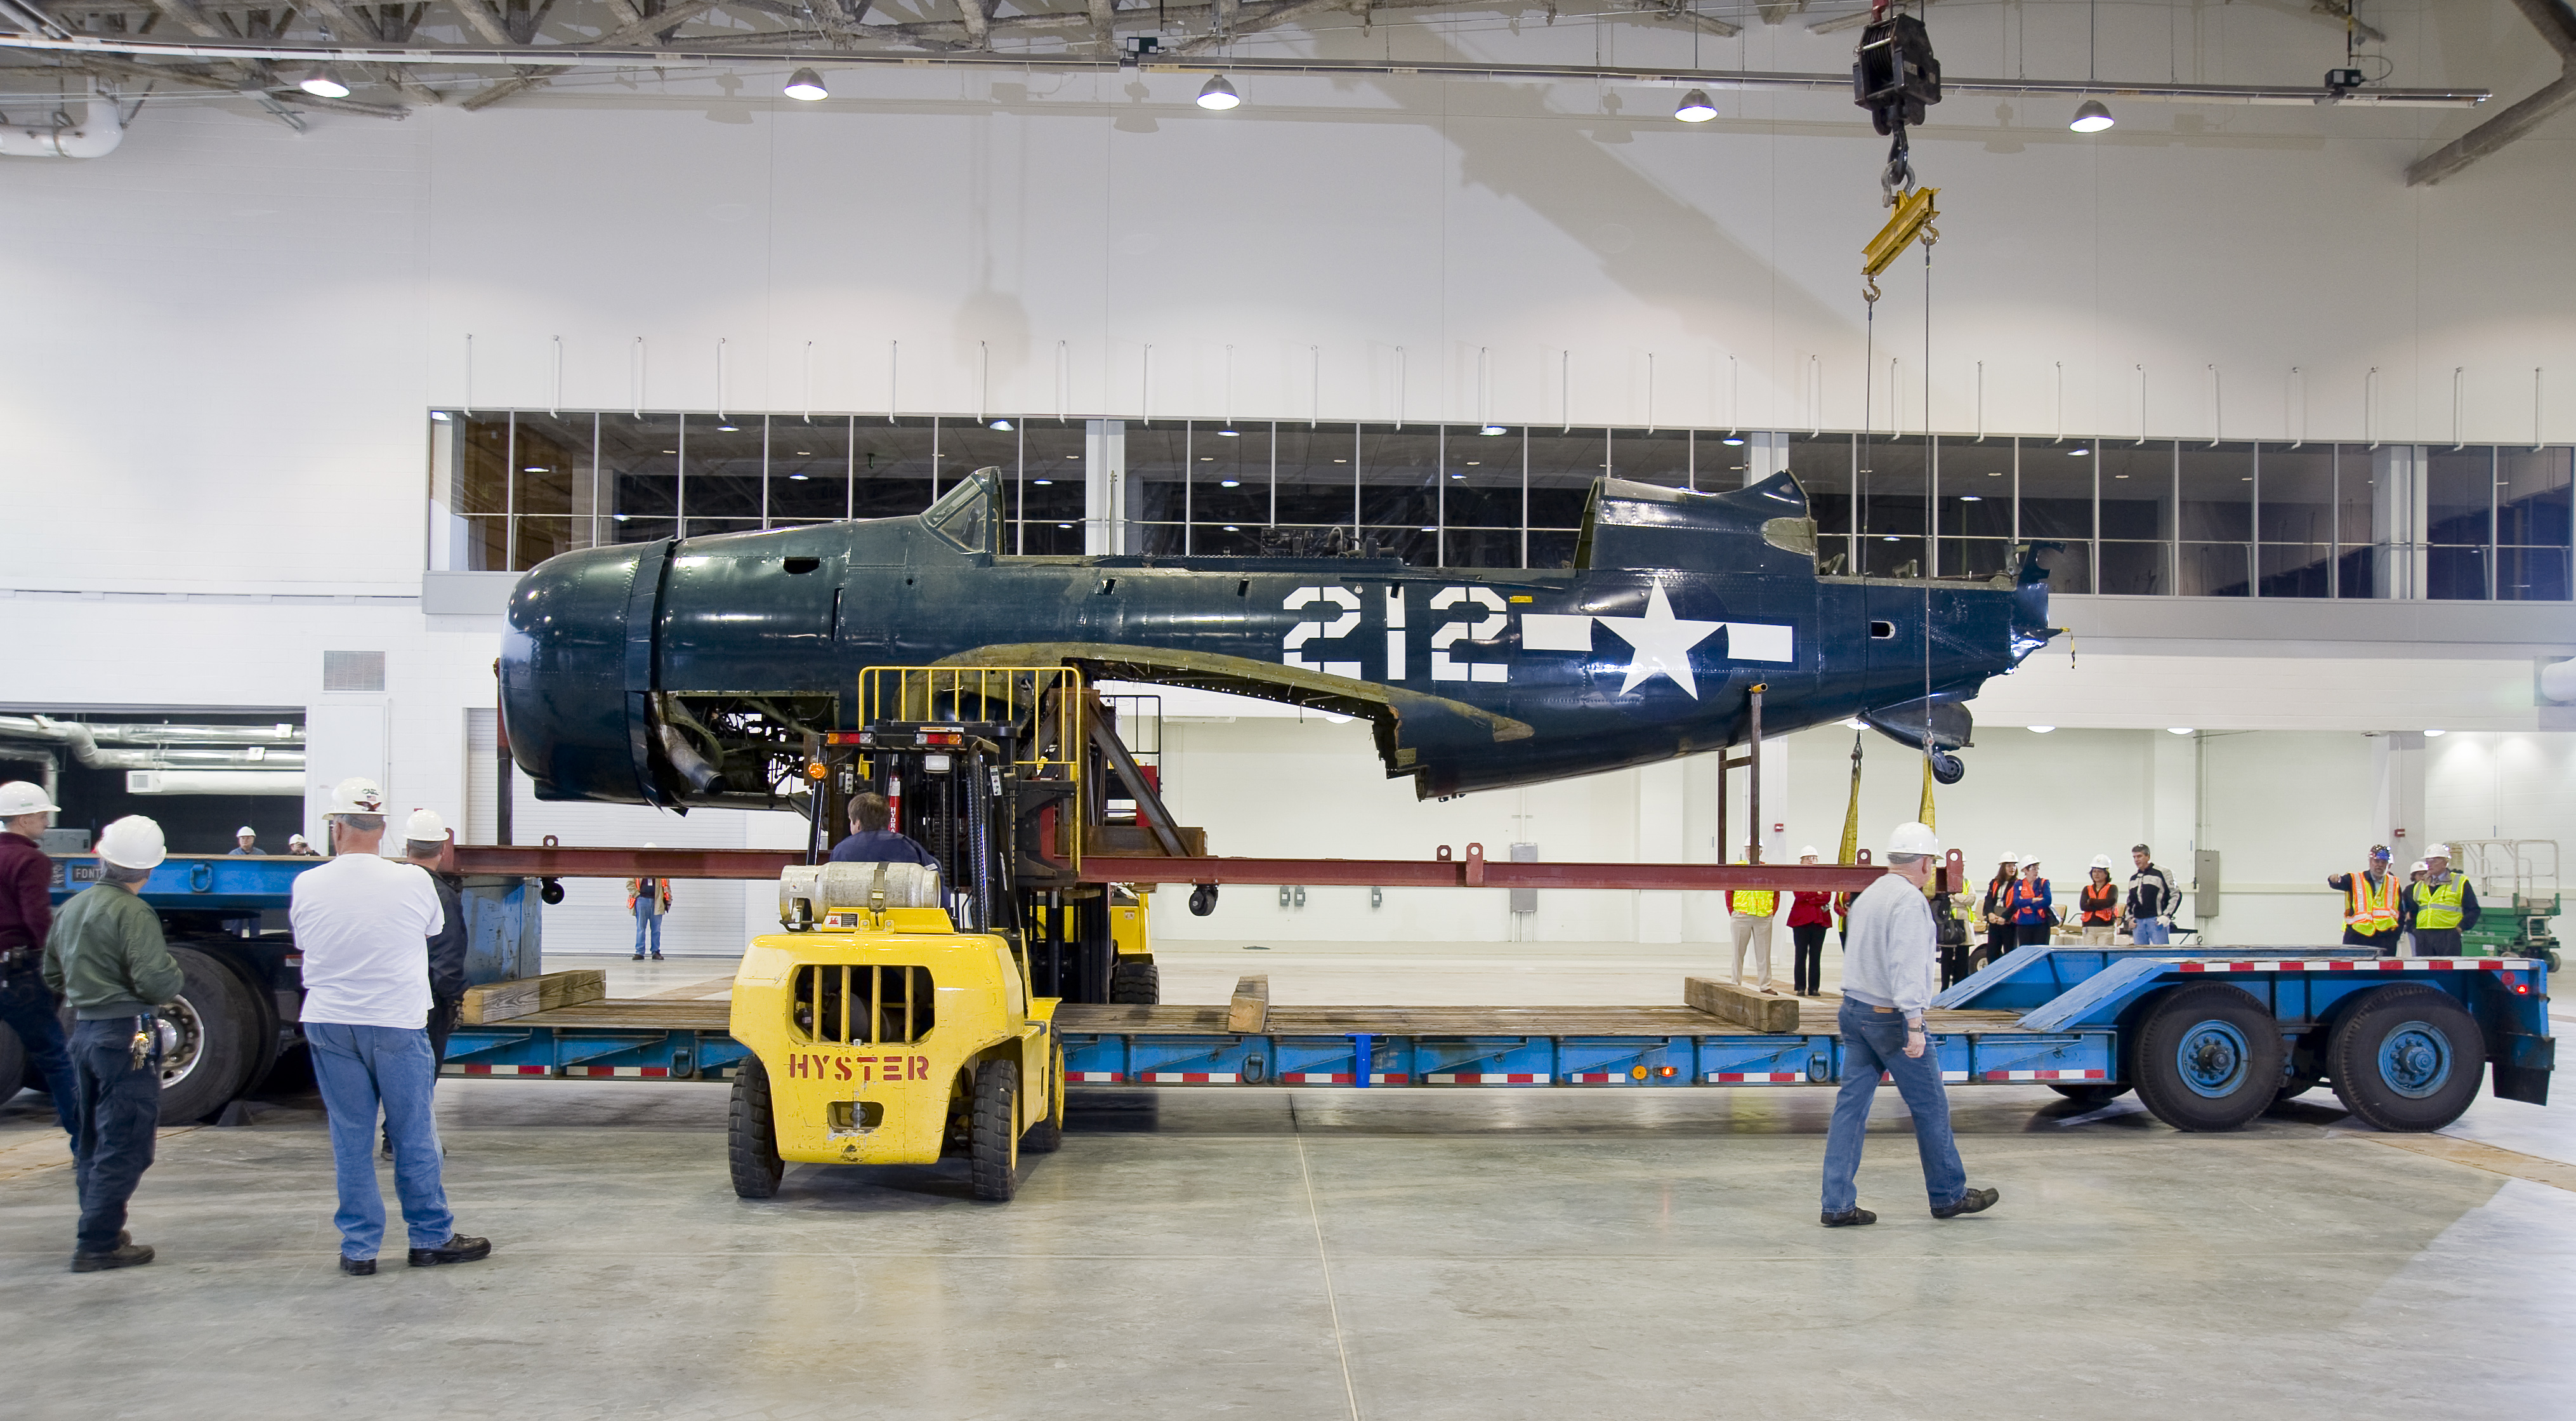 Staff Move Helldiver into Mary Baker Engen Restoration Hangar